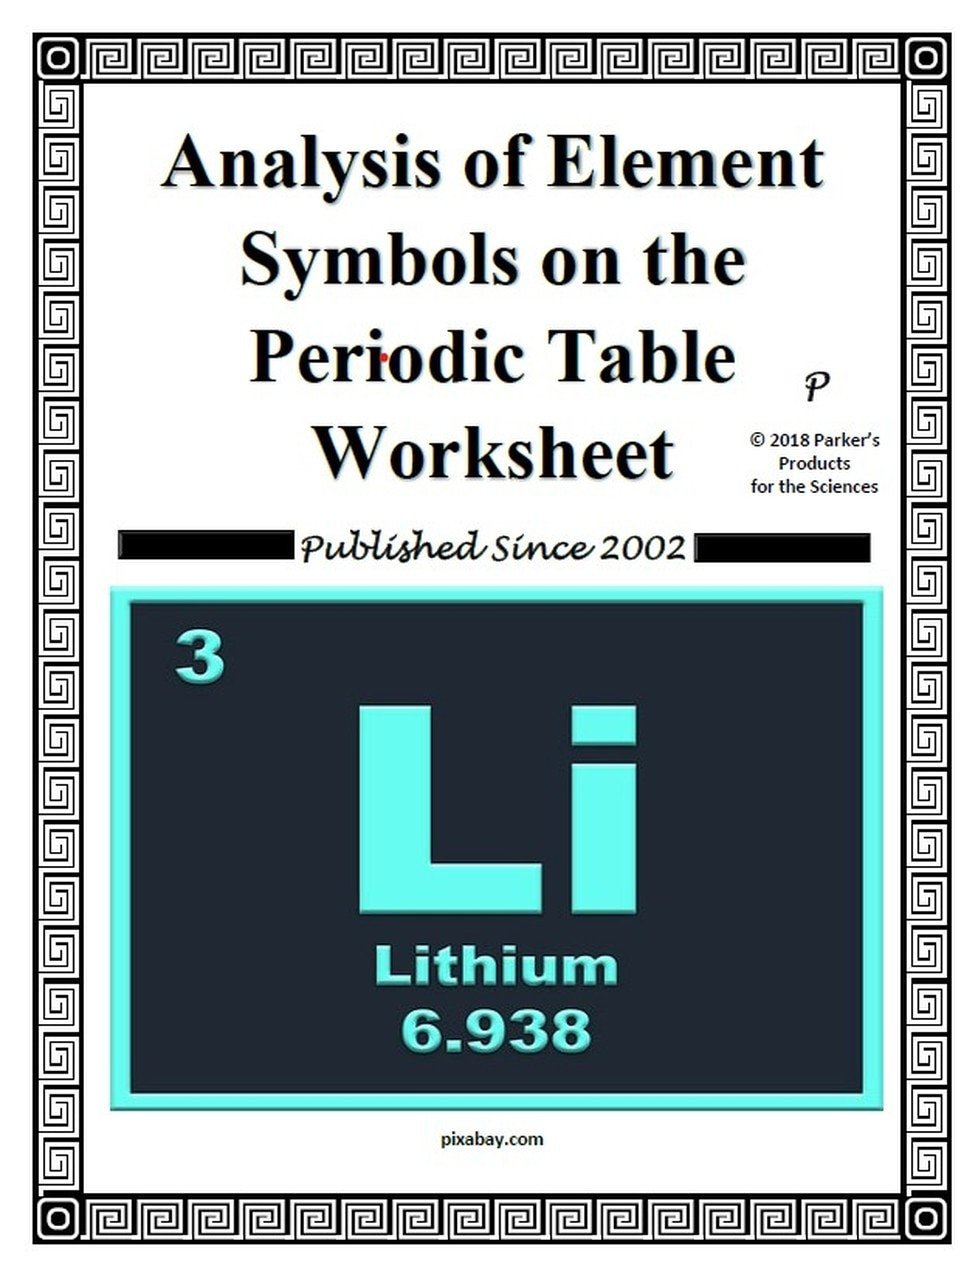 Periodic Table organization Worksheet Analysis Of Element Symbols On the Periodic Table Worksheet